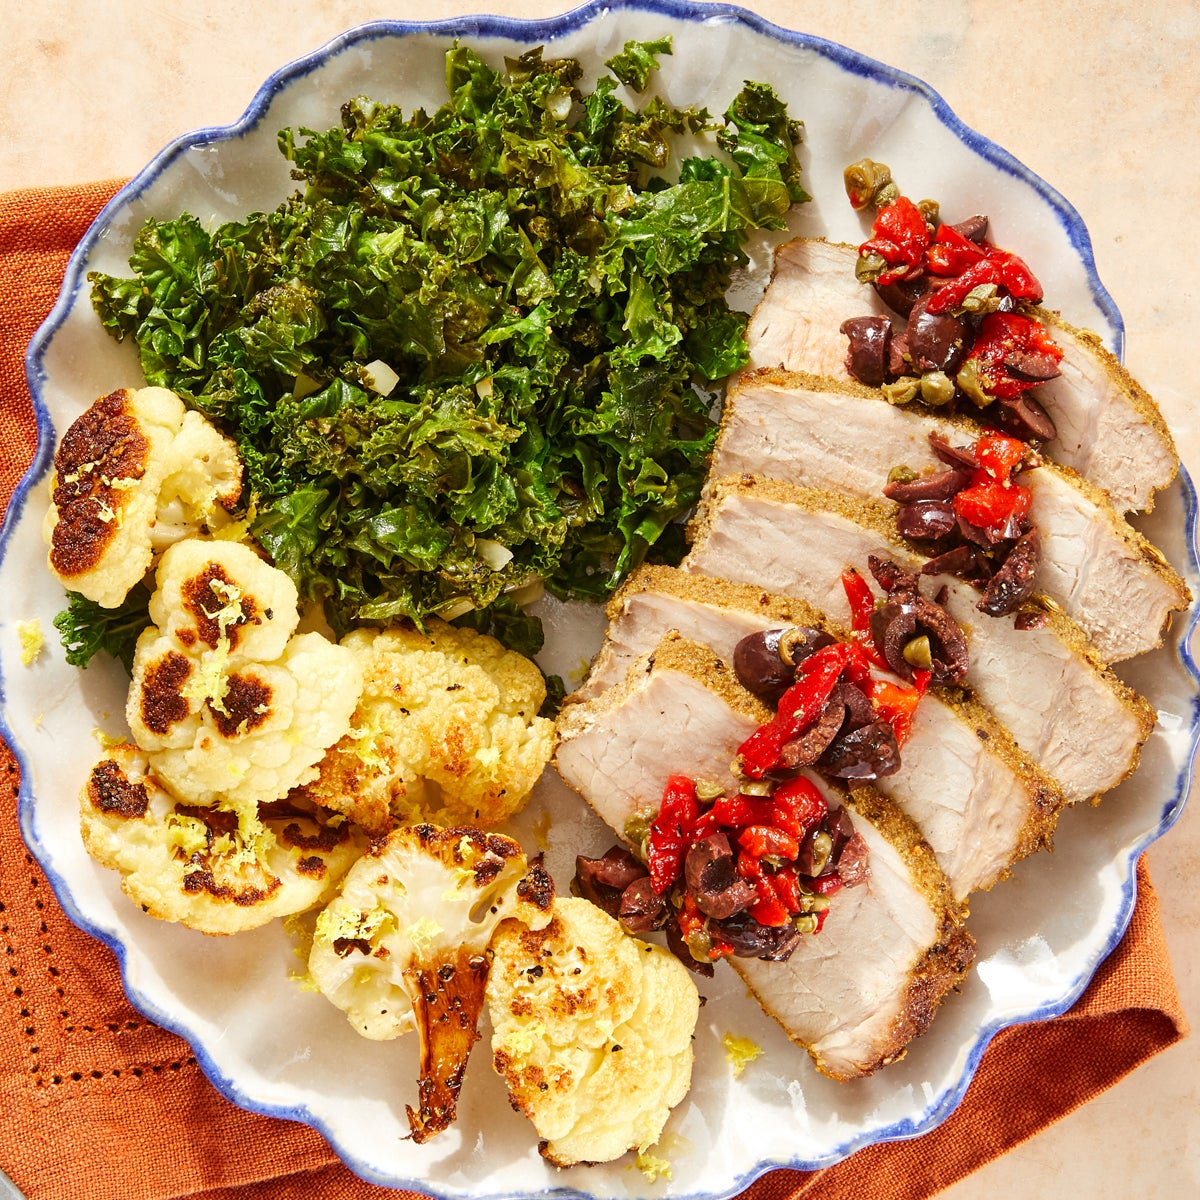 Roasted Pork & Olive Tapenade with Cauliflower & Kale